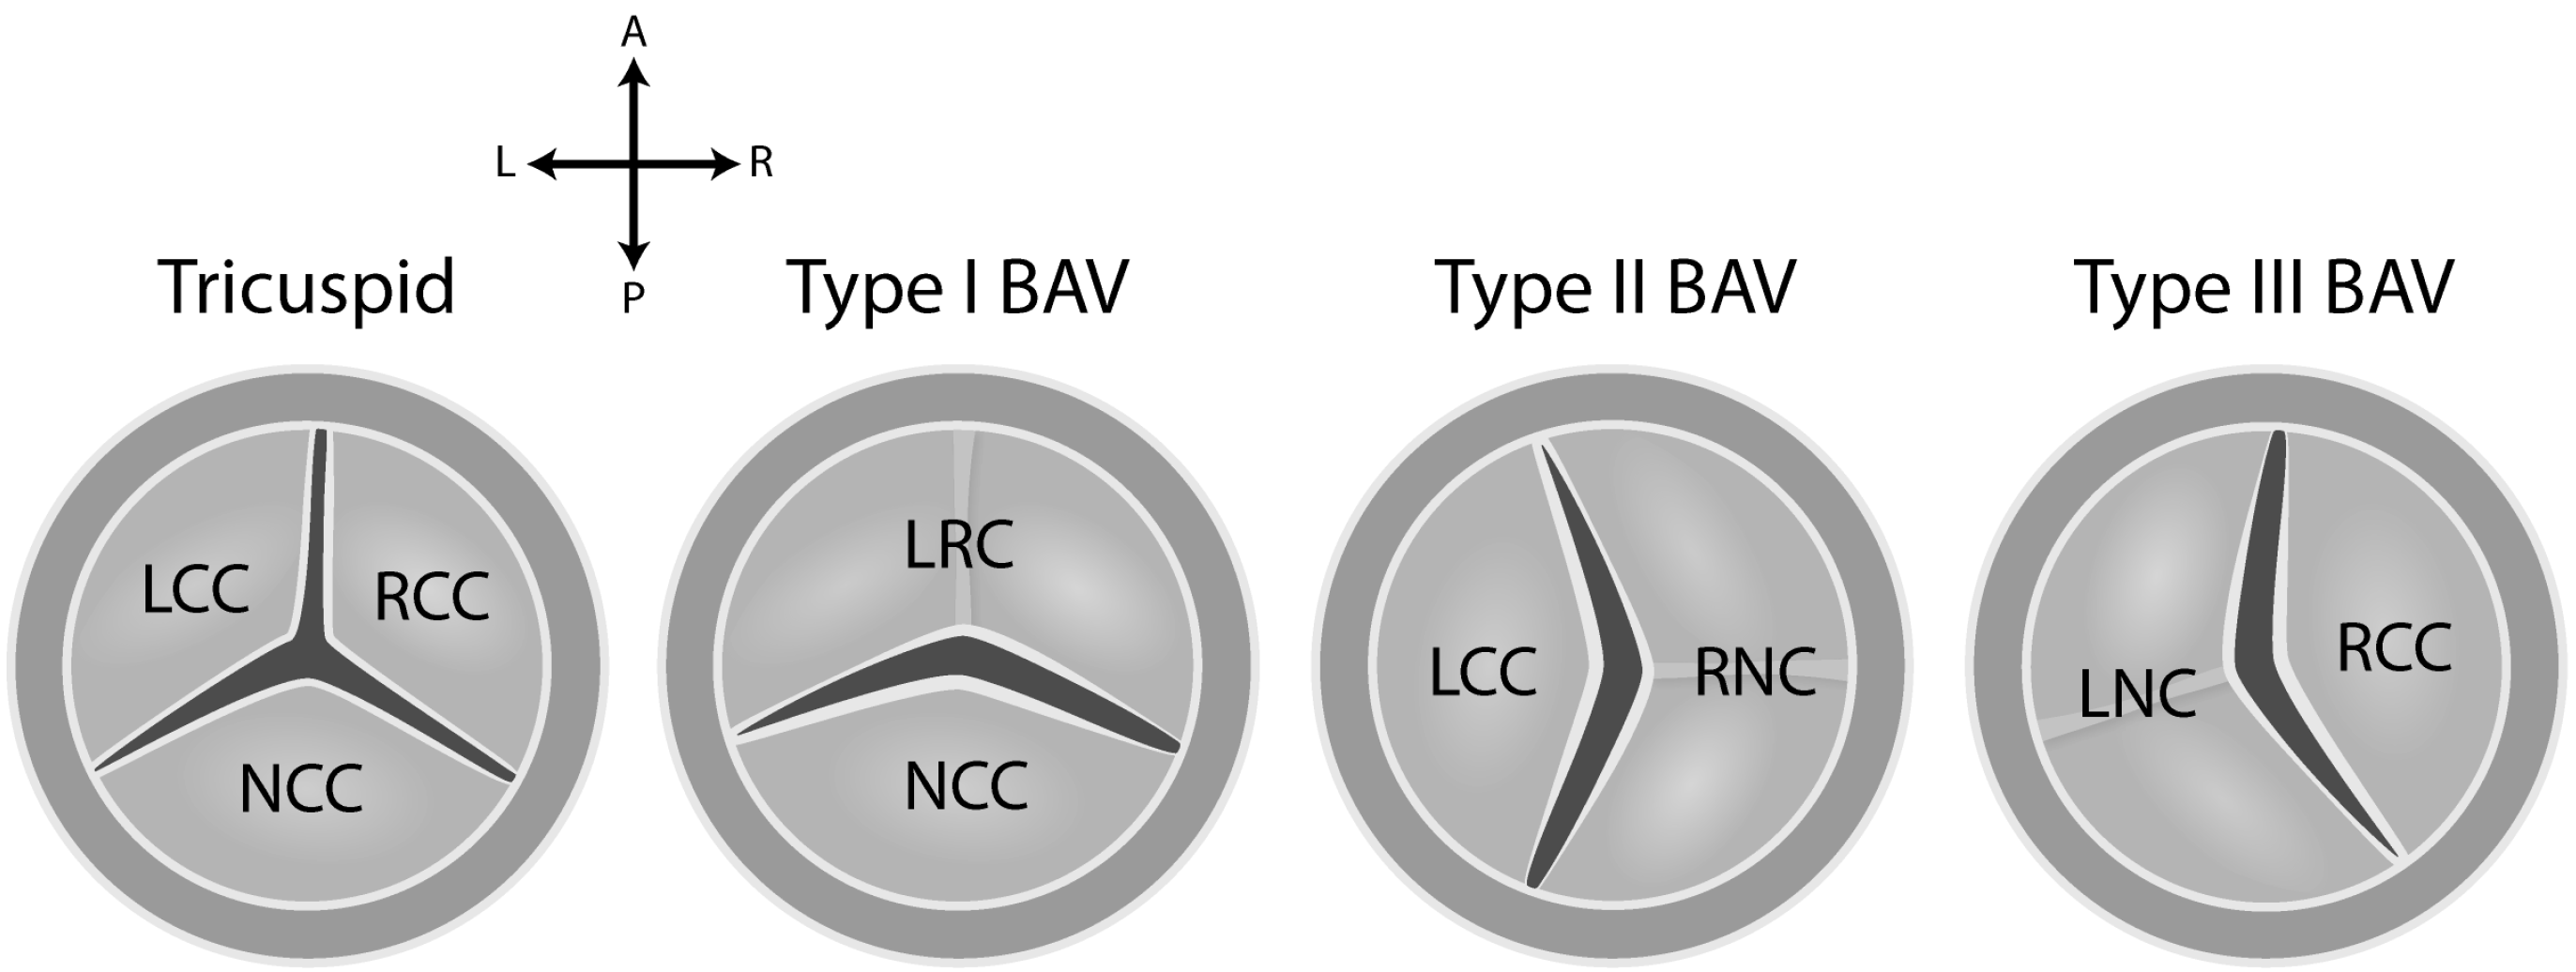 Jcdd Free Full Text Embryonic Development Of The Bicuspid Aortic